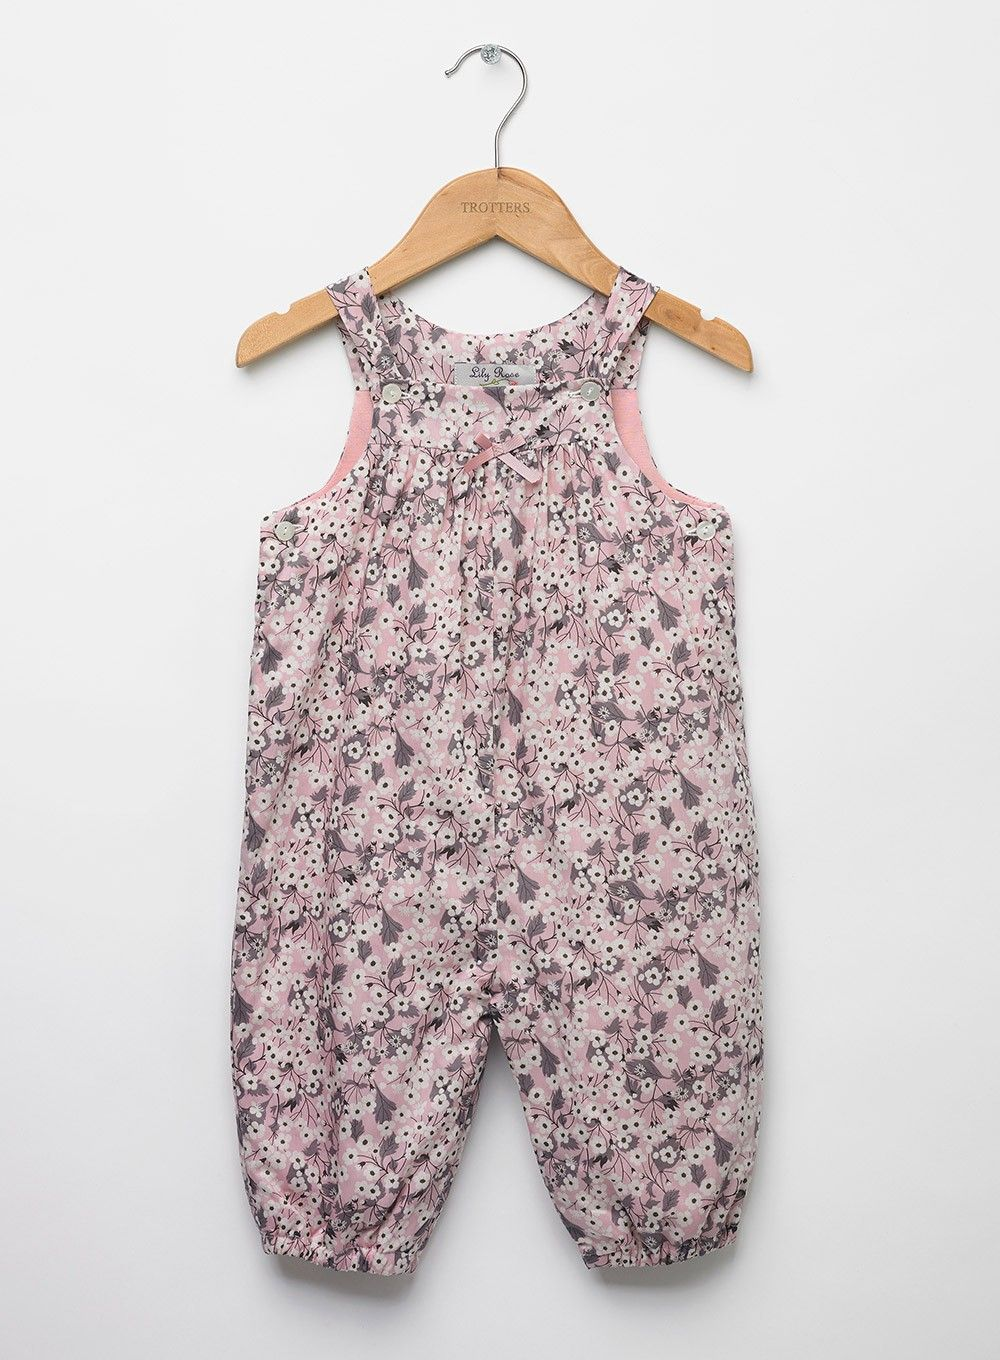 99db78557 These 100% cotton dungarees come in Liberty's Japanese-style cherry blossom  Mitsi print;